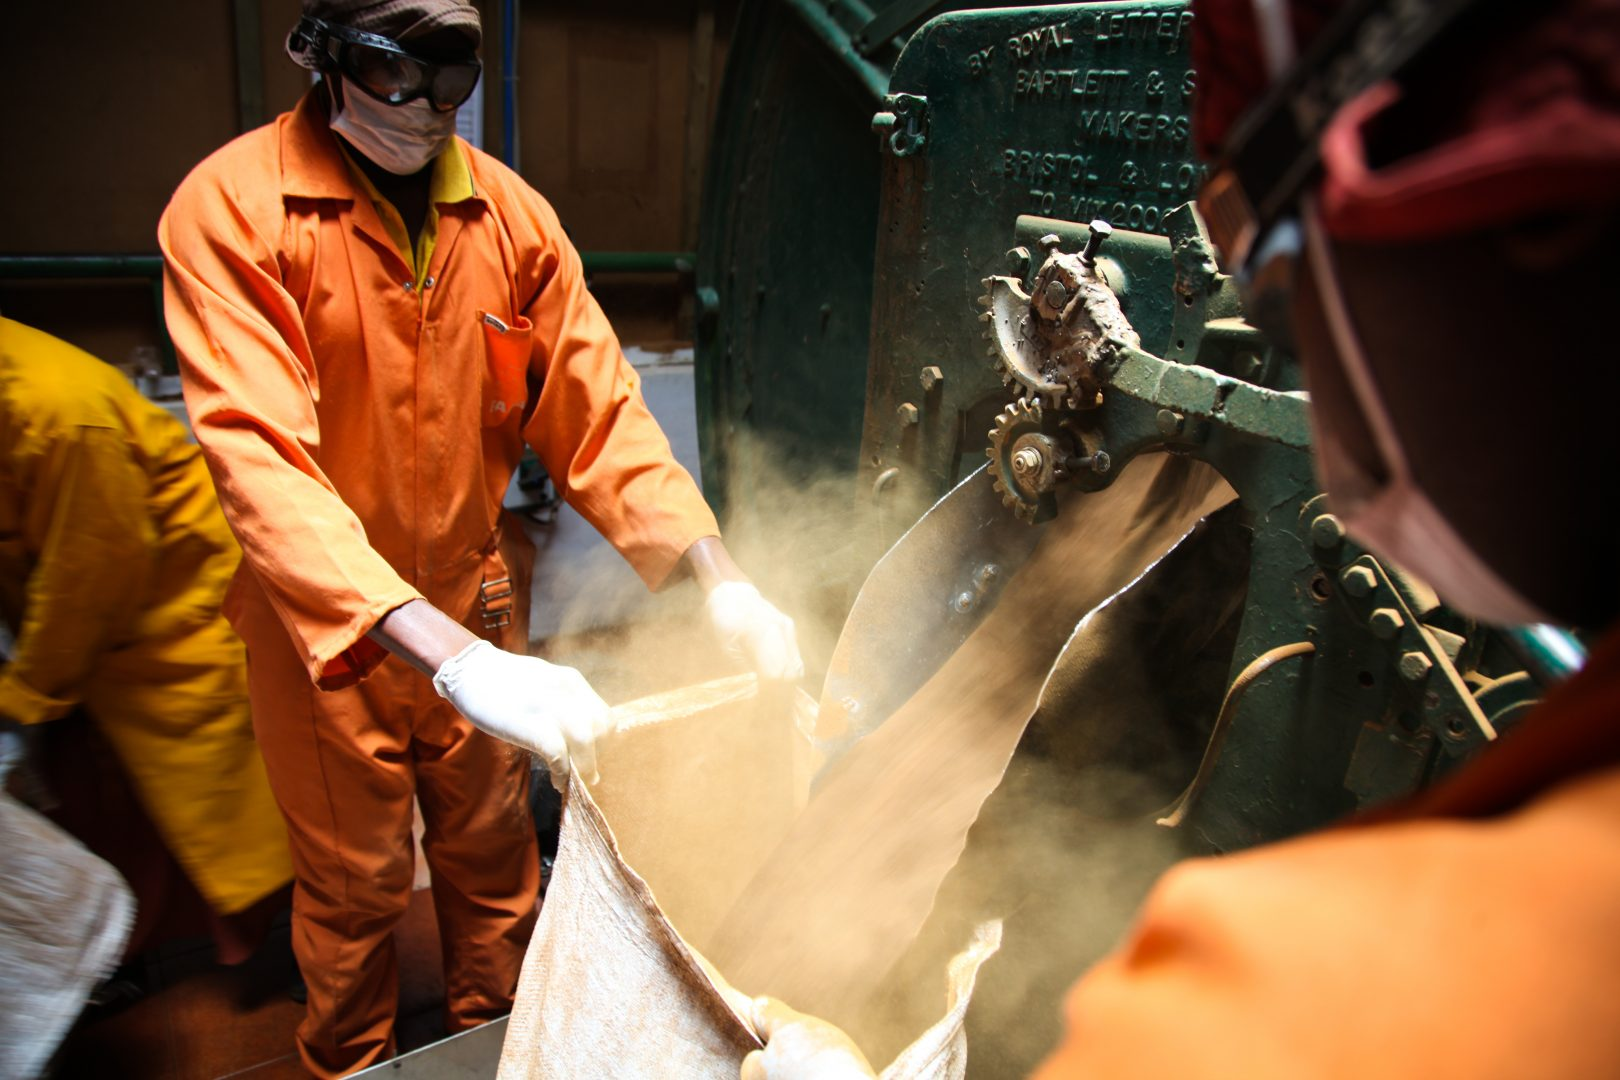 Worker fills sack with dust from a machine